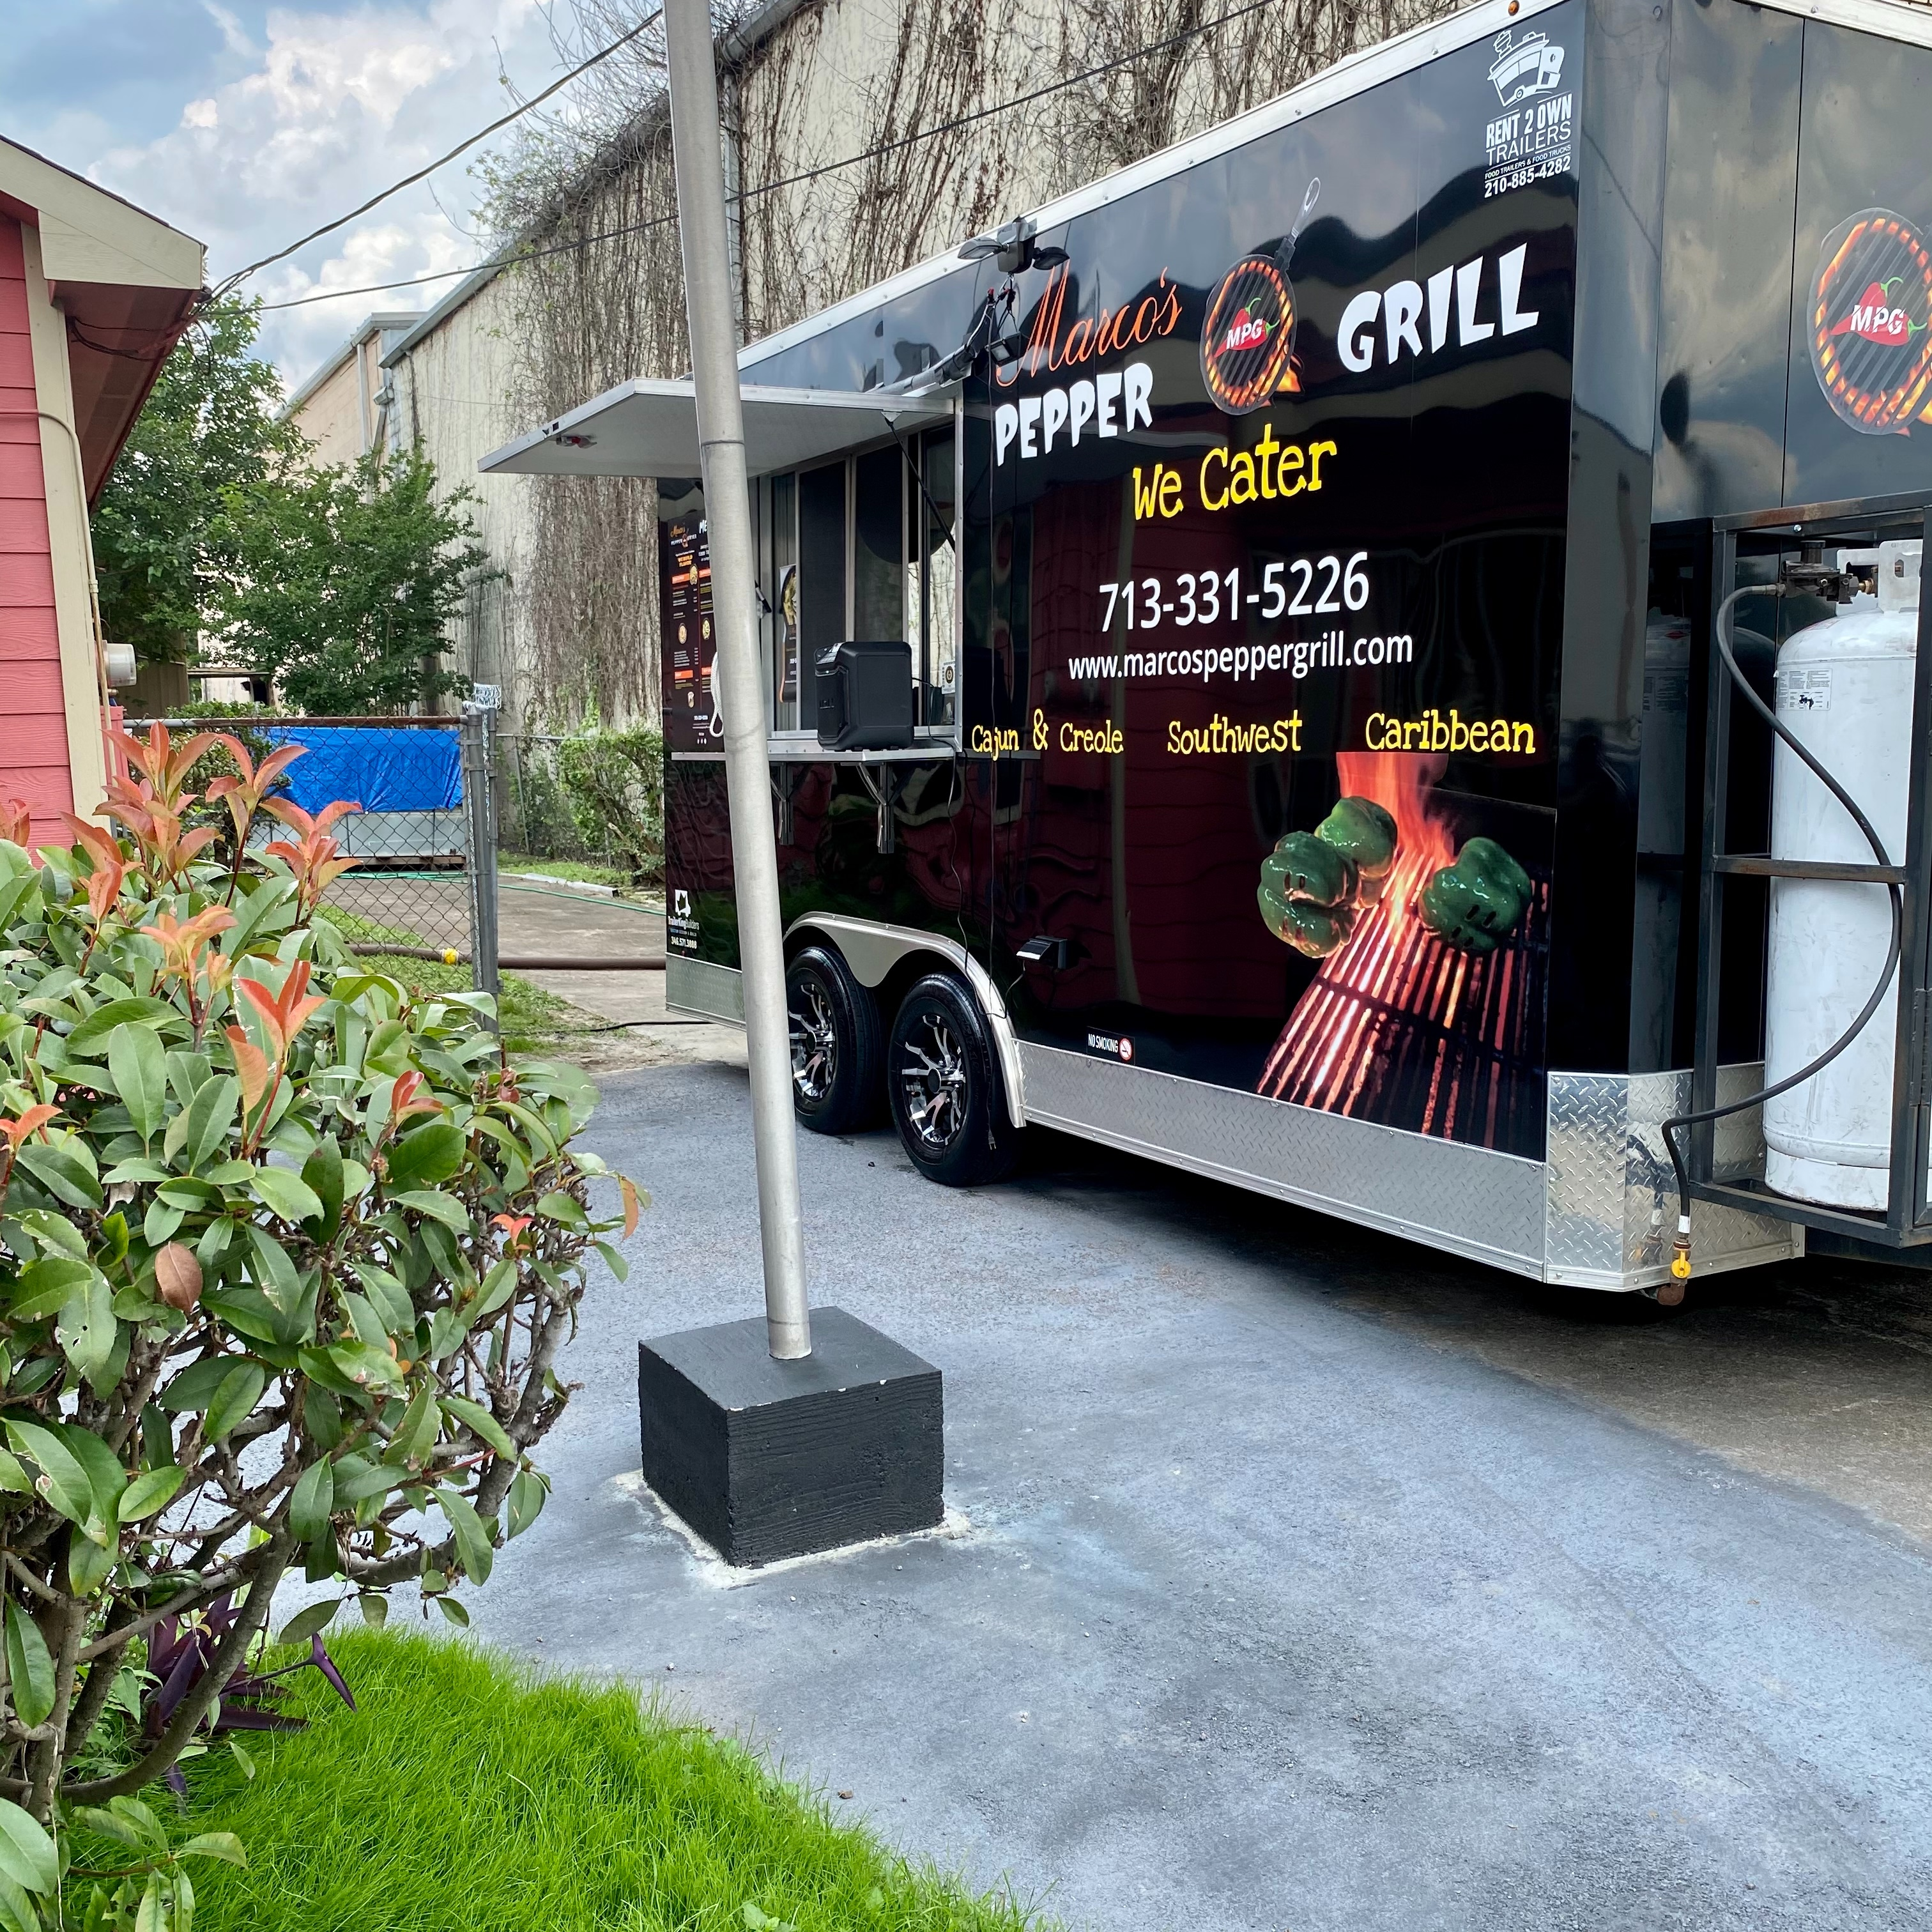 Marco's Pepper Grill food truck profile image